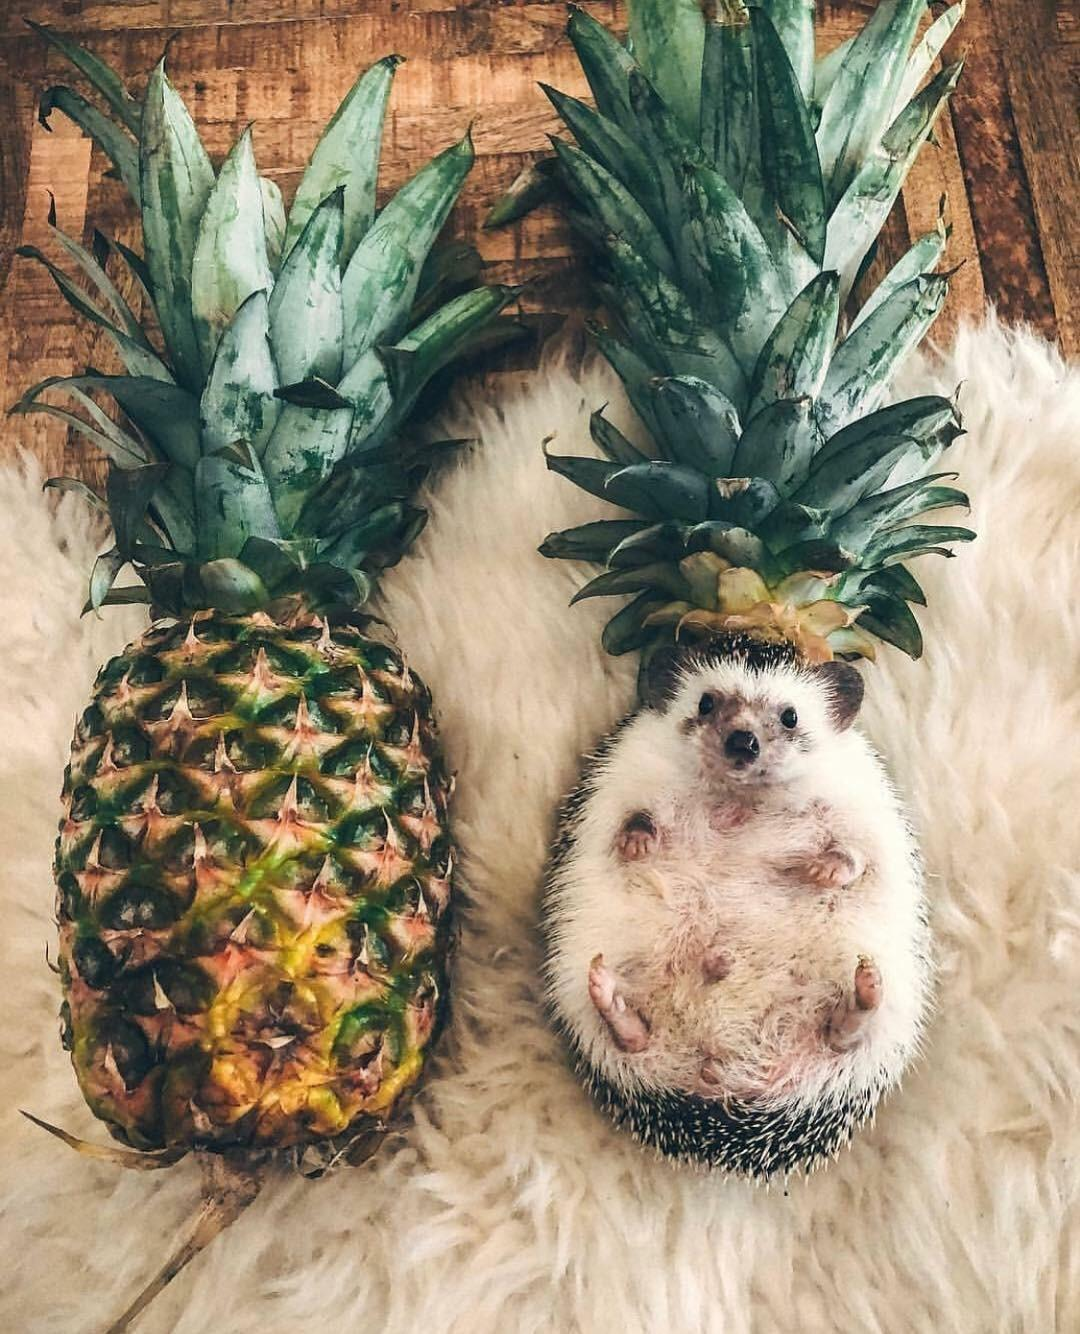 putyouinabettermood :     Prickly fruit via  https://ift.tt/2J6oAKk  putyouinabettermood.com